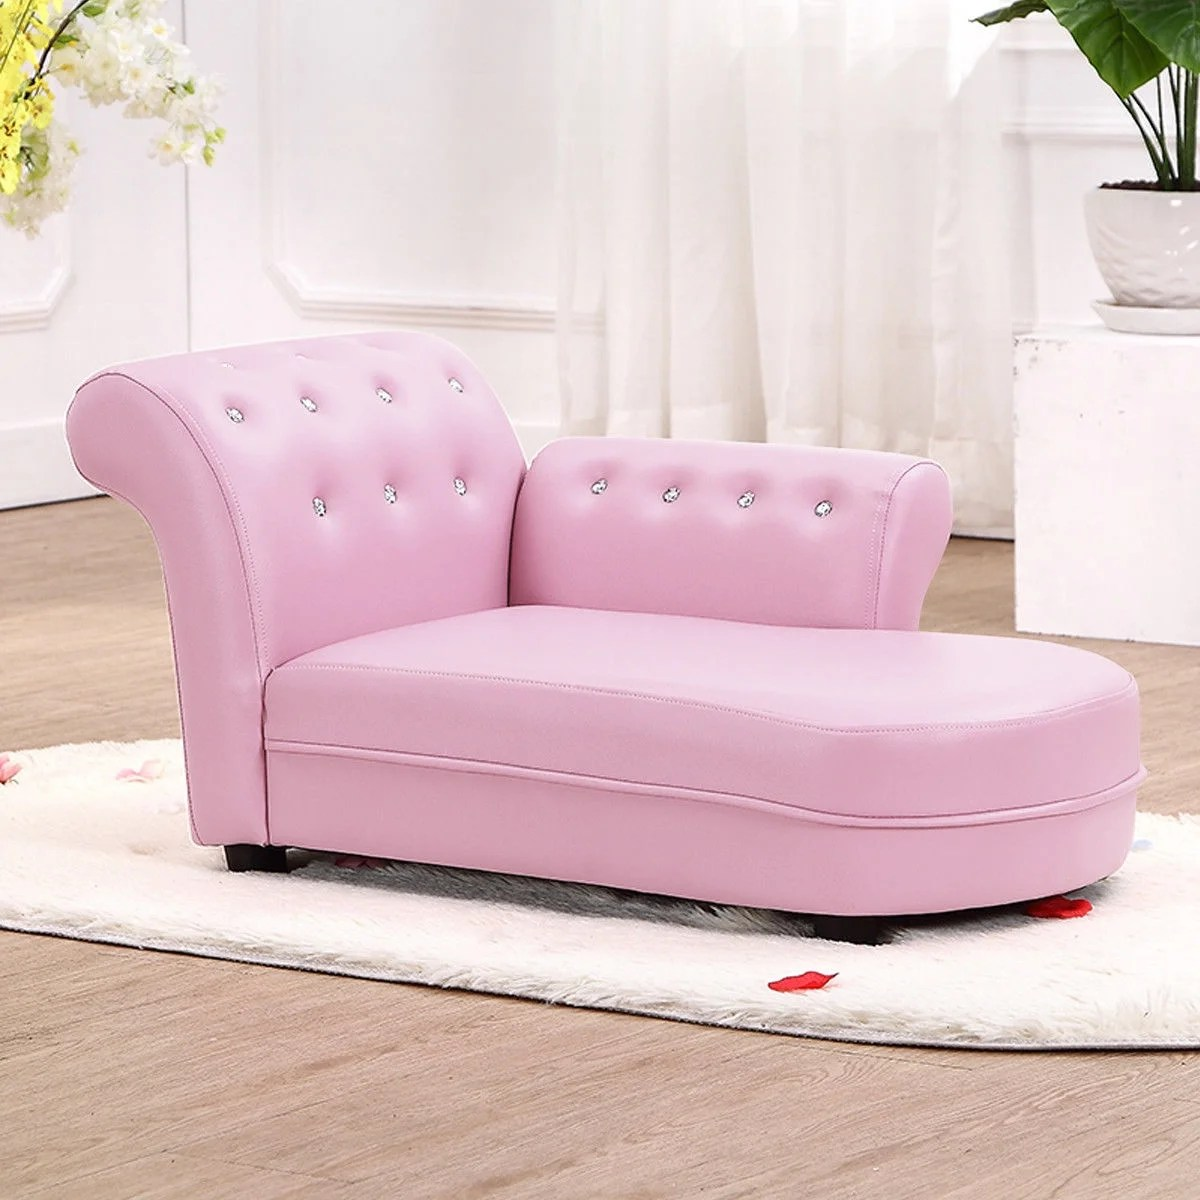 Gymax Kids Sofa Relax Couch Chaise Lounge Armrest Chair Bedroom Living Room Pink